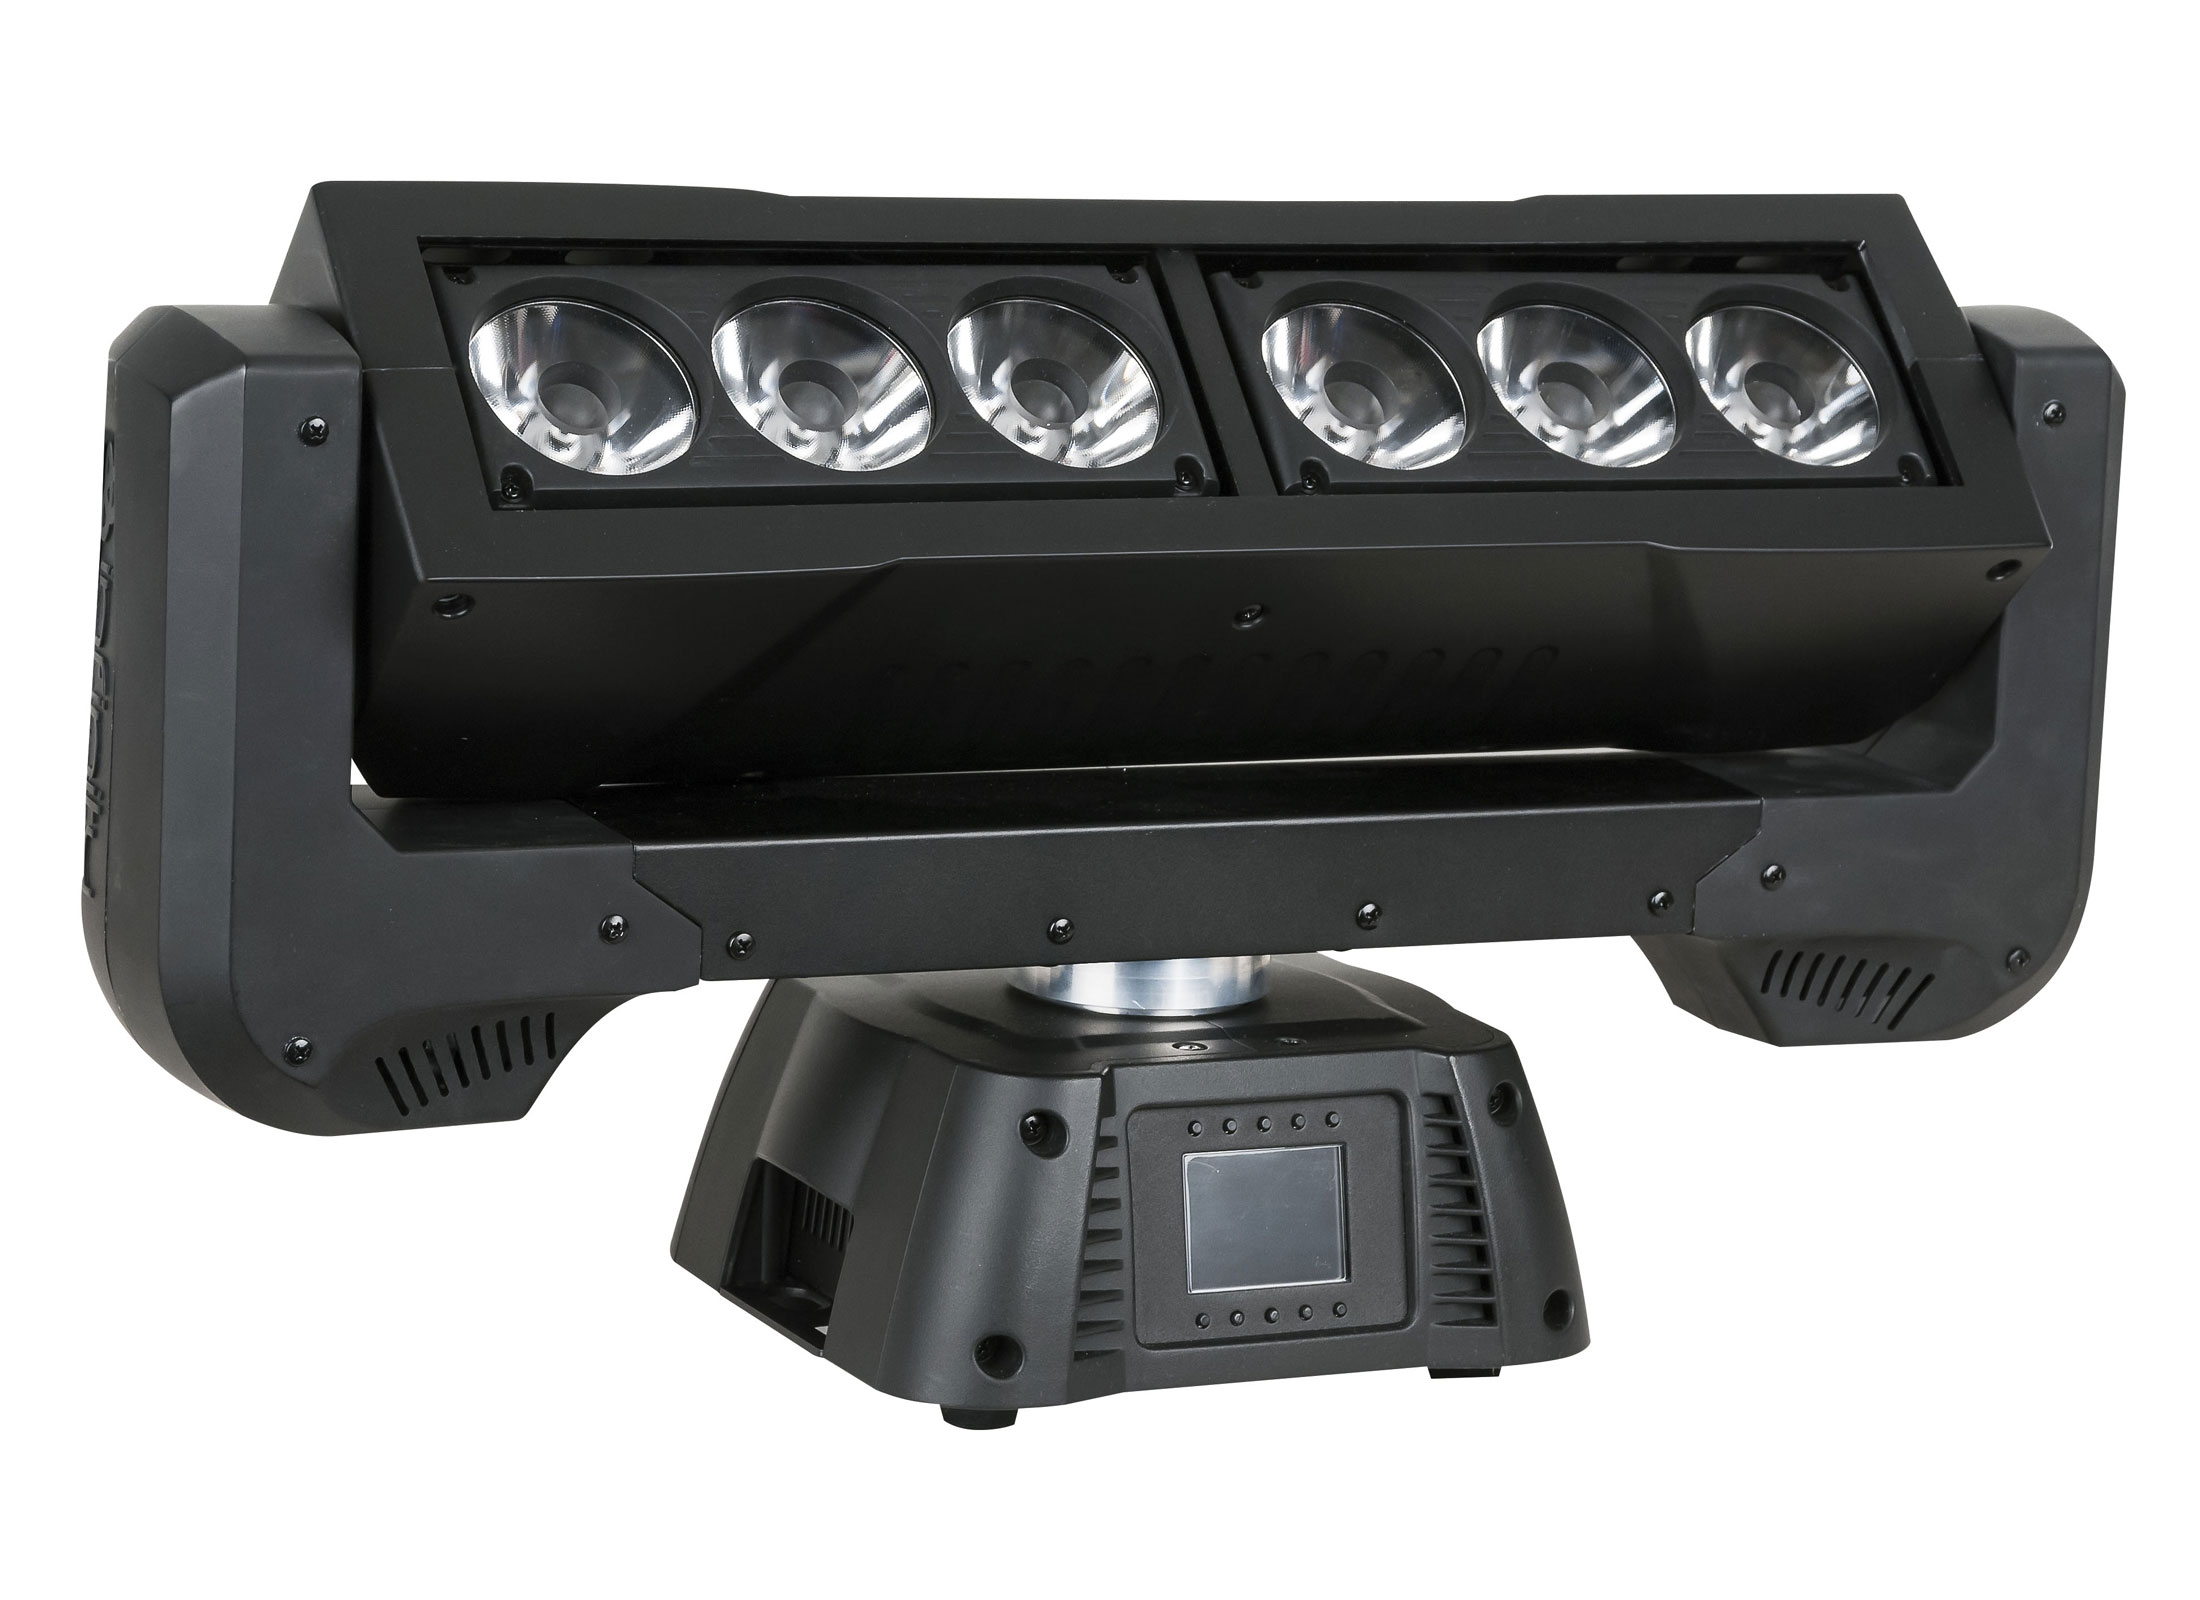 Infinity iFX-615 LED Moving Bar Online At Low Prices At Huss Light ...